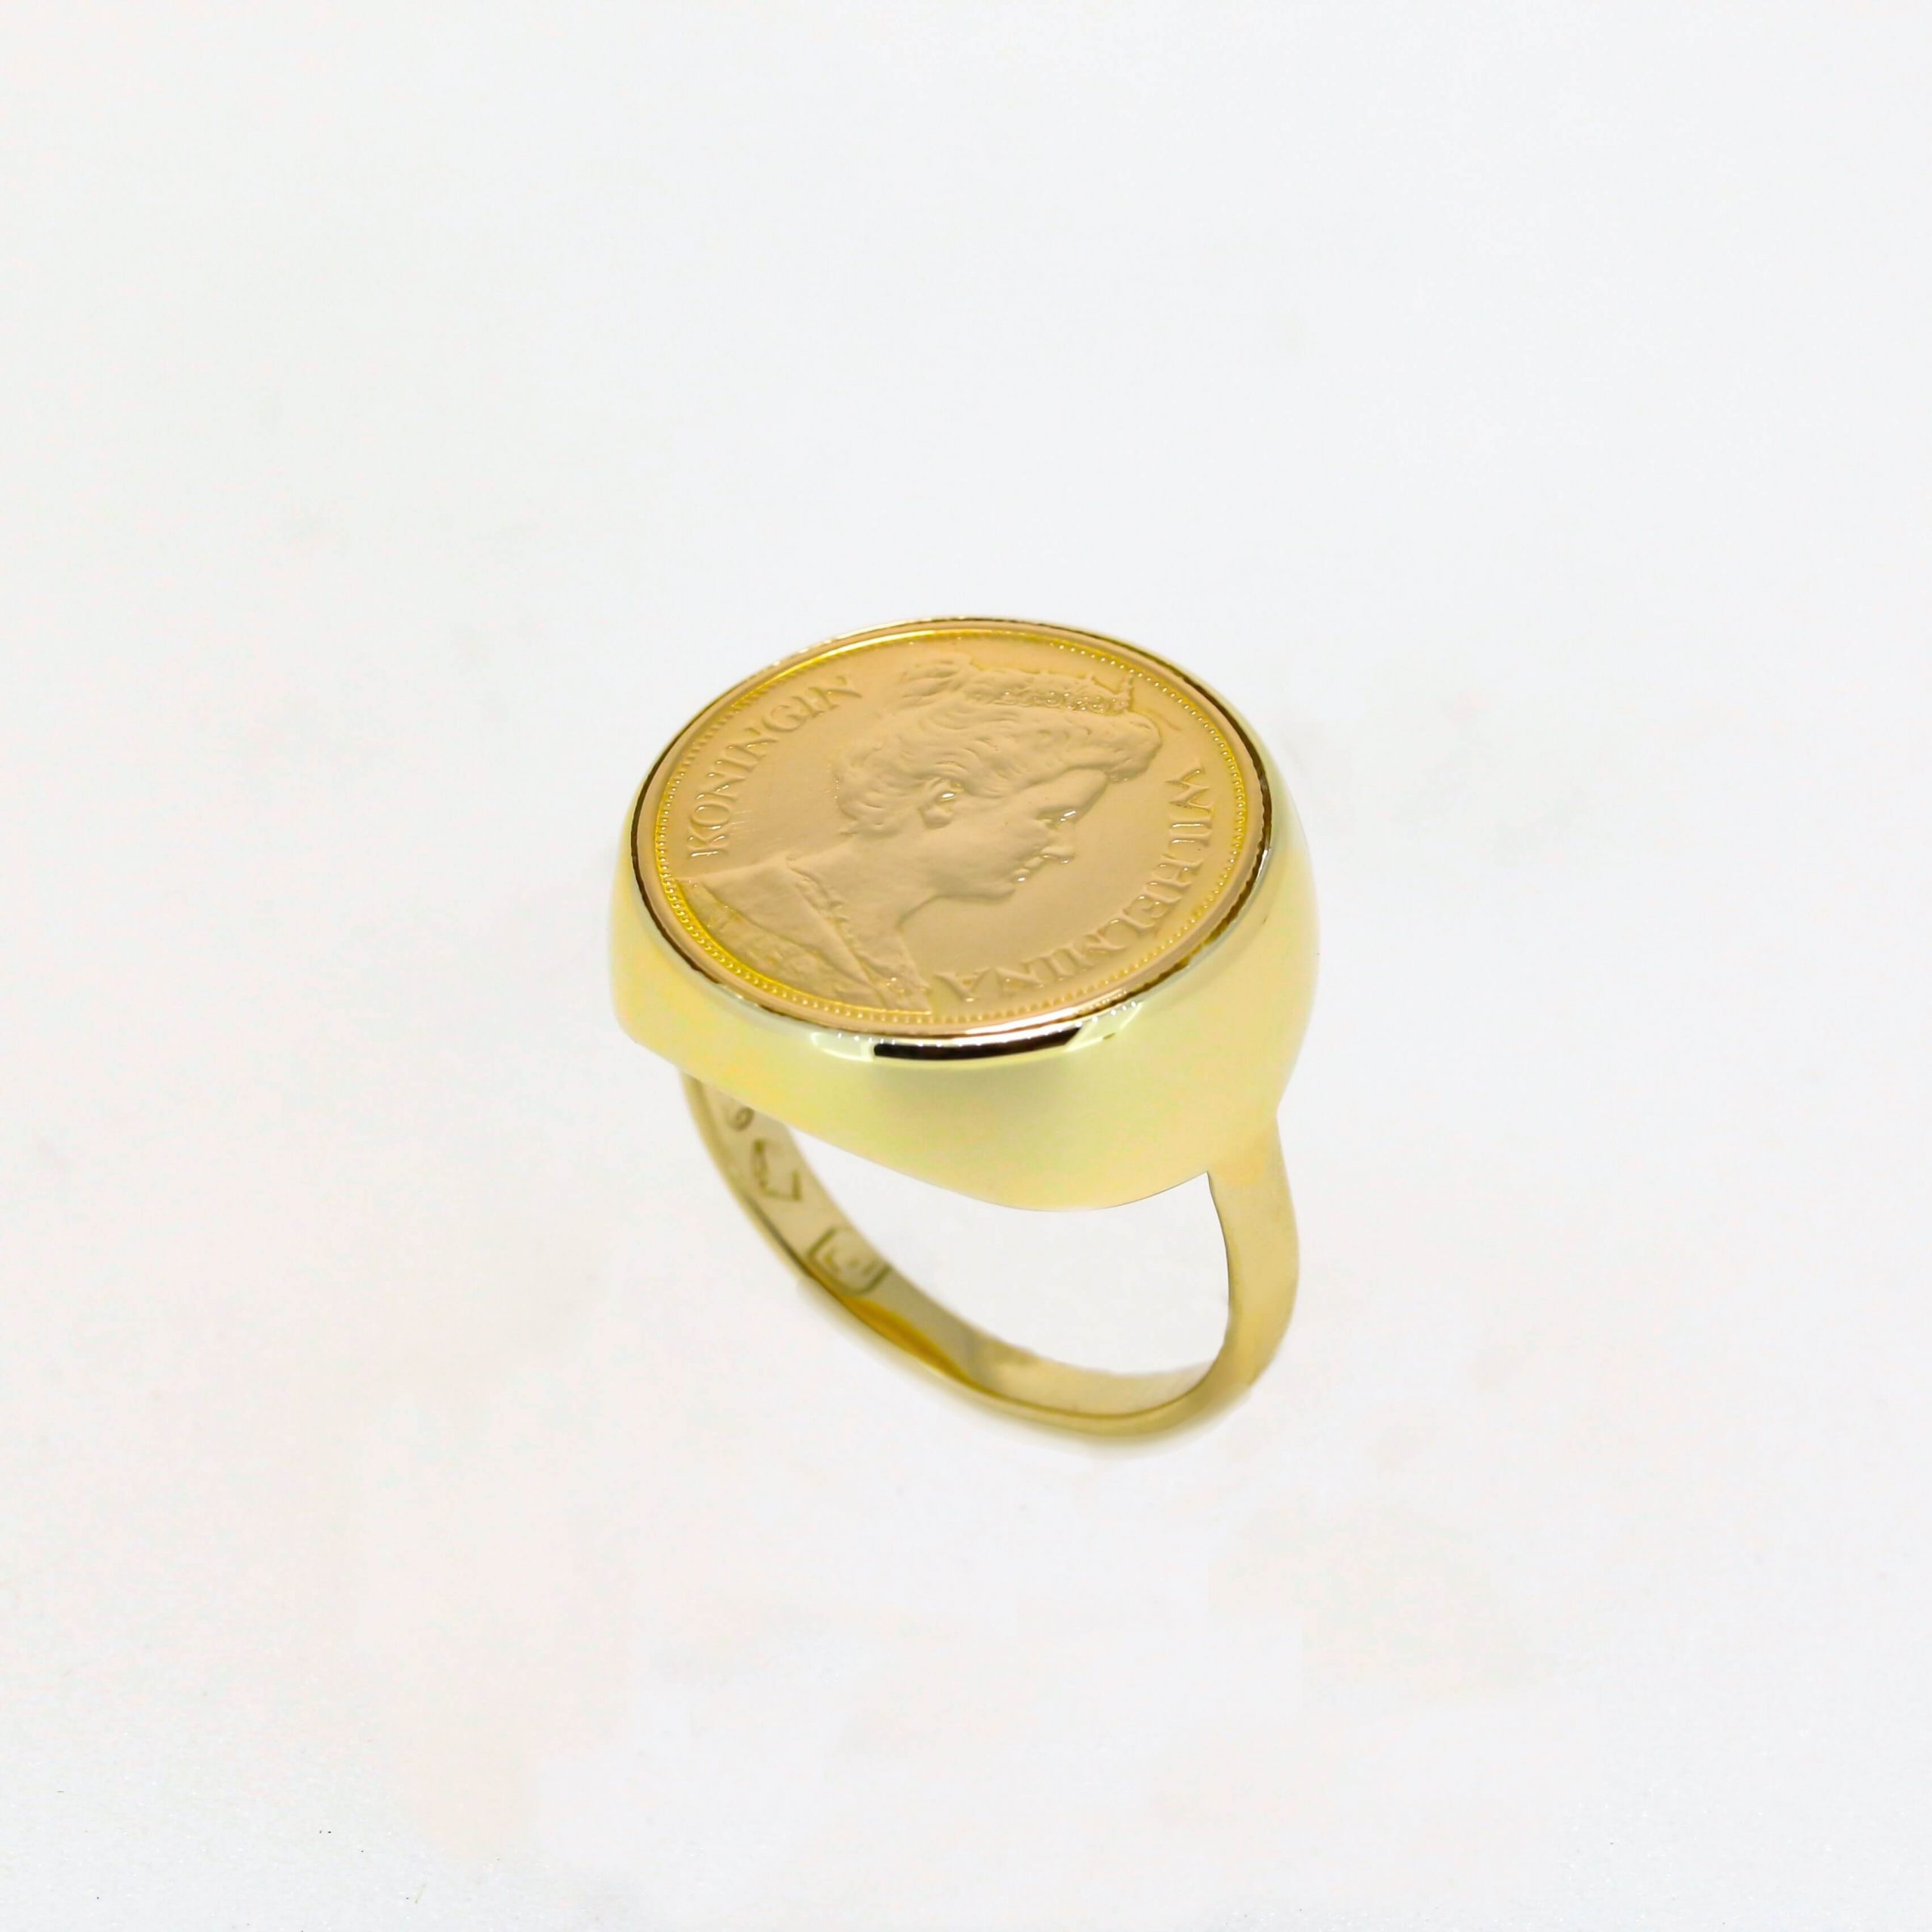 Netherlands Coin Ring